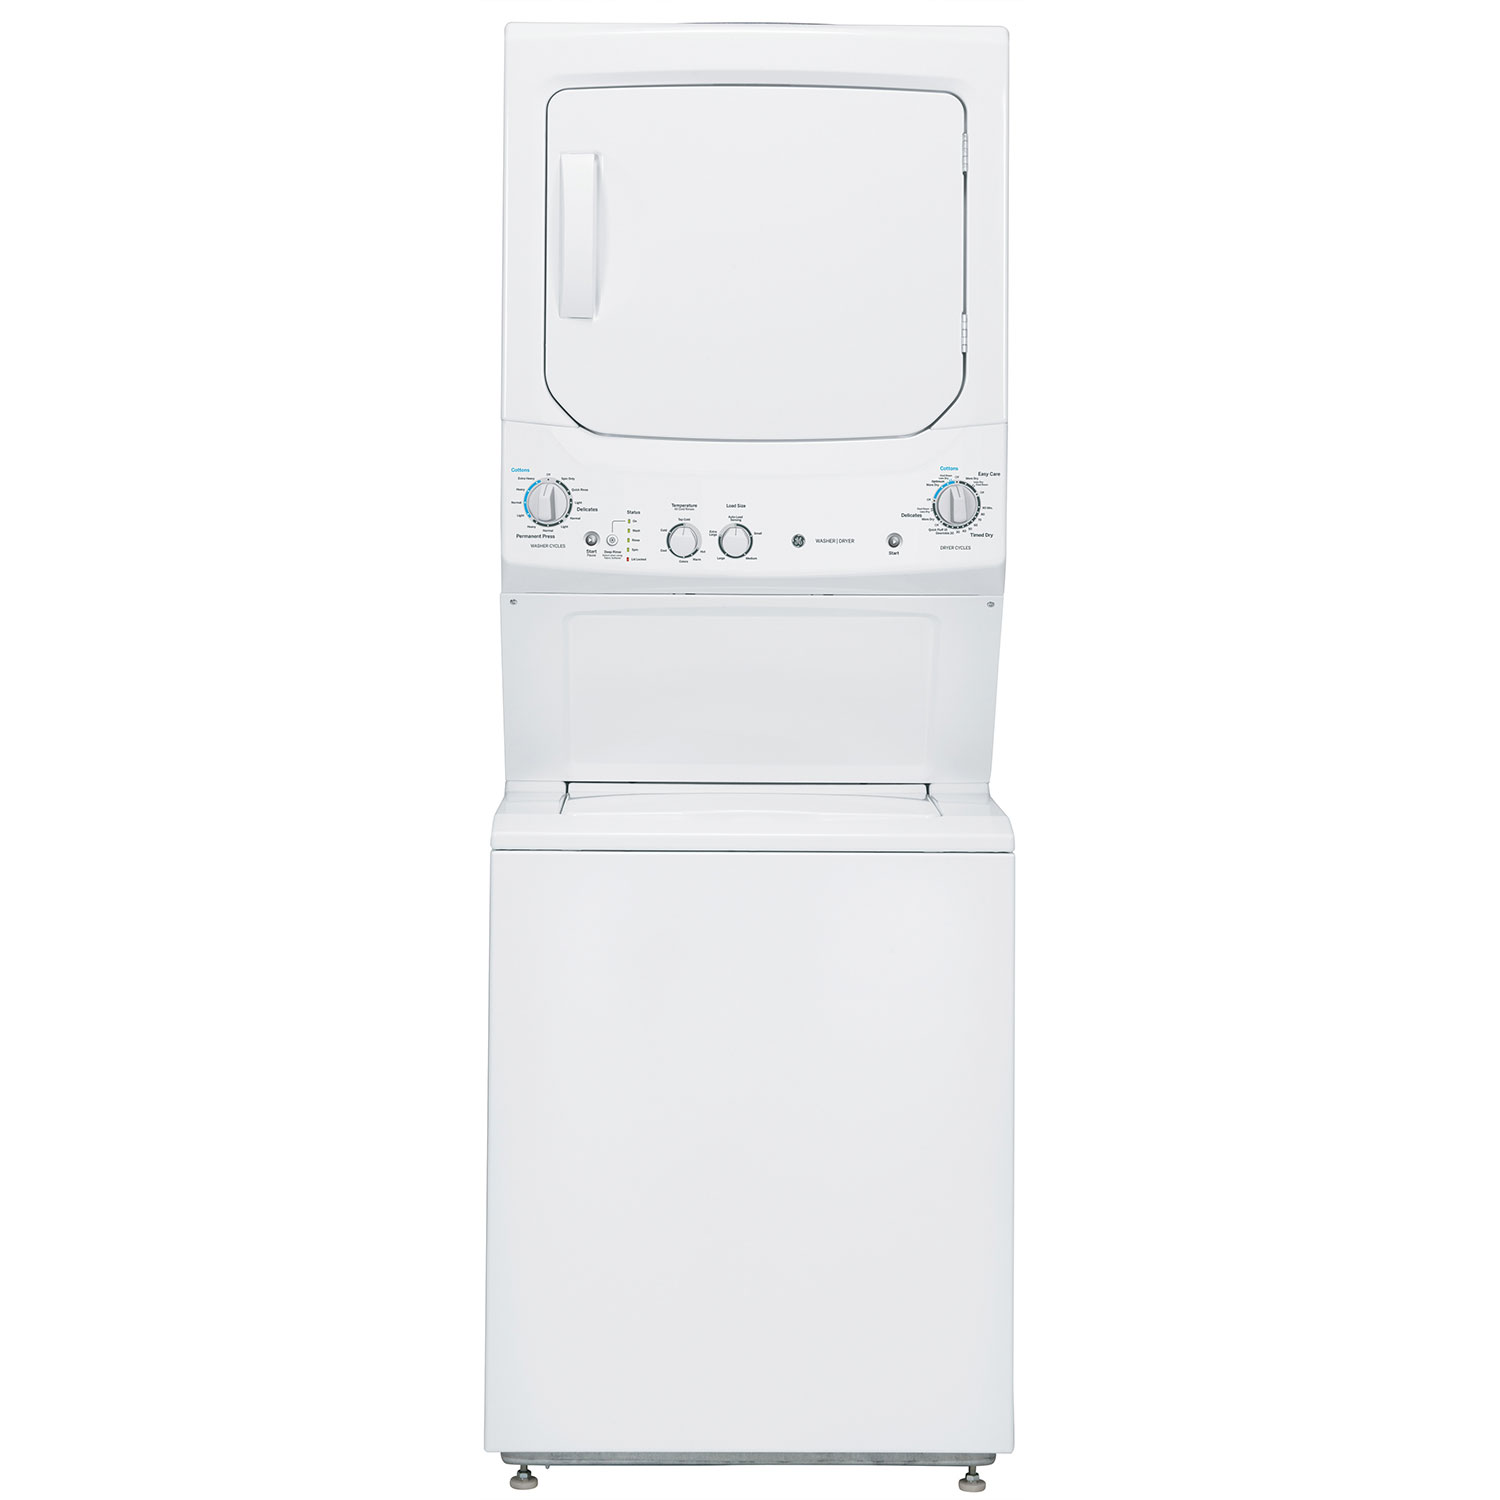 Lg 2 3 cu ft all in one washer and dryer - Ge 27 3 9 Cu Ft Washer And 5 9 Cu Ft Dryer Laundry Center Gud27esmjww White